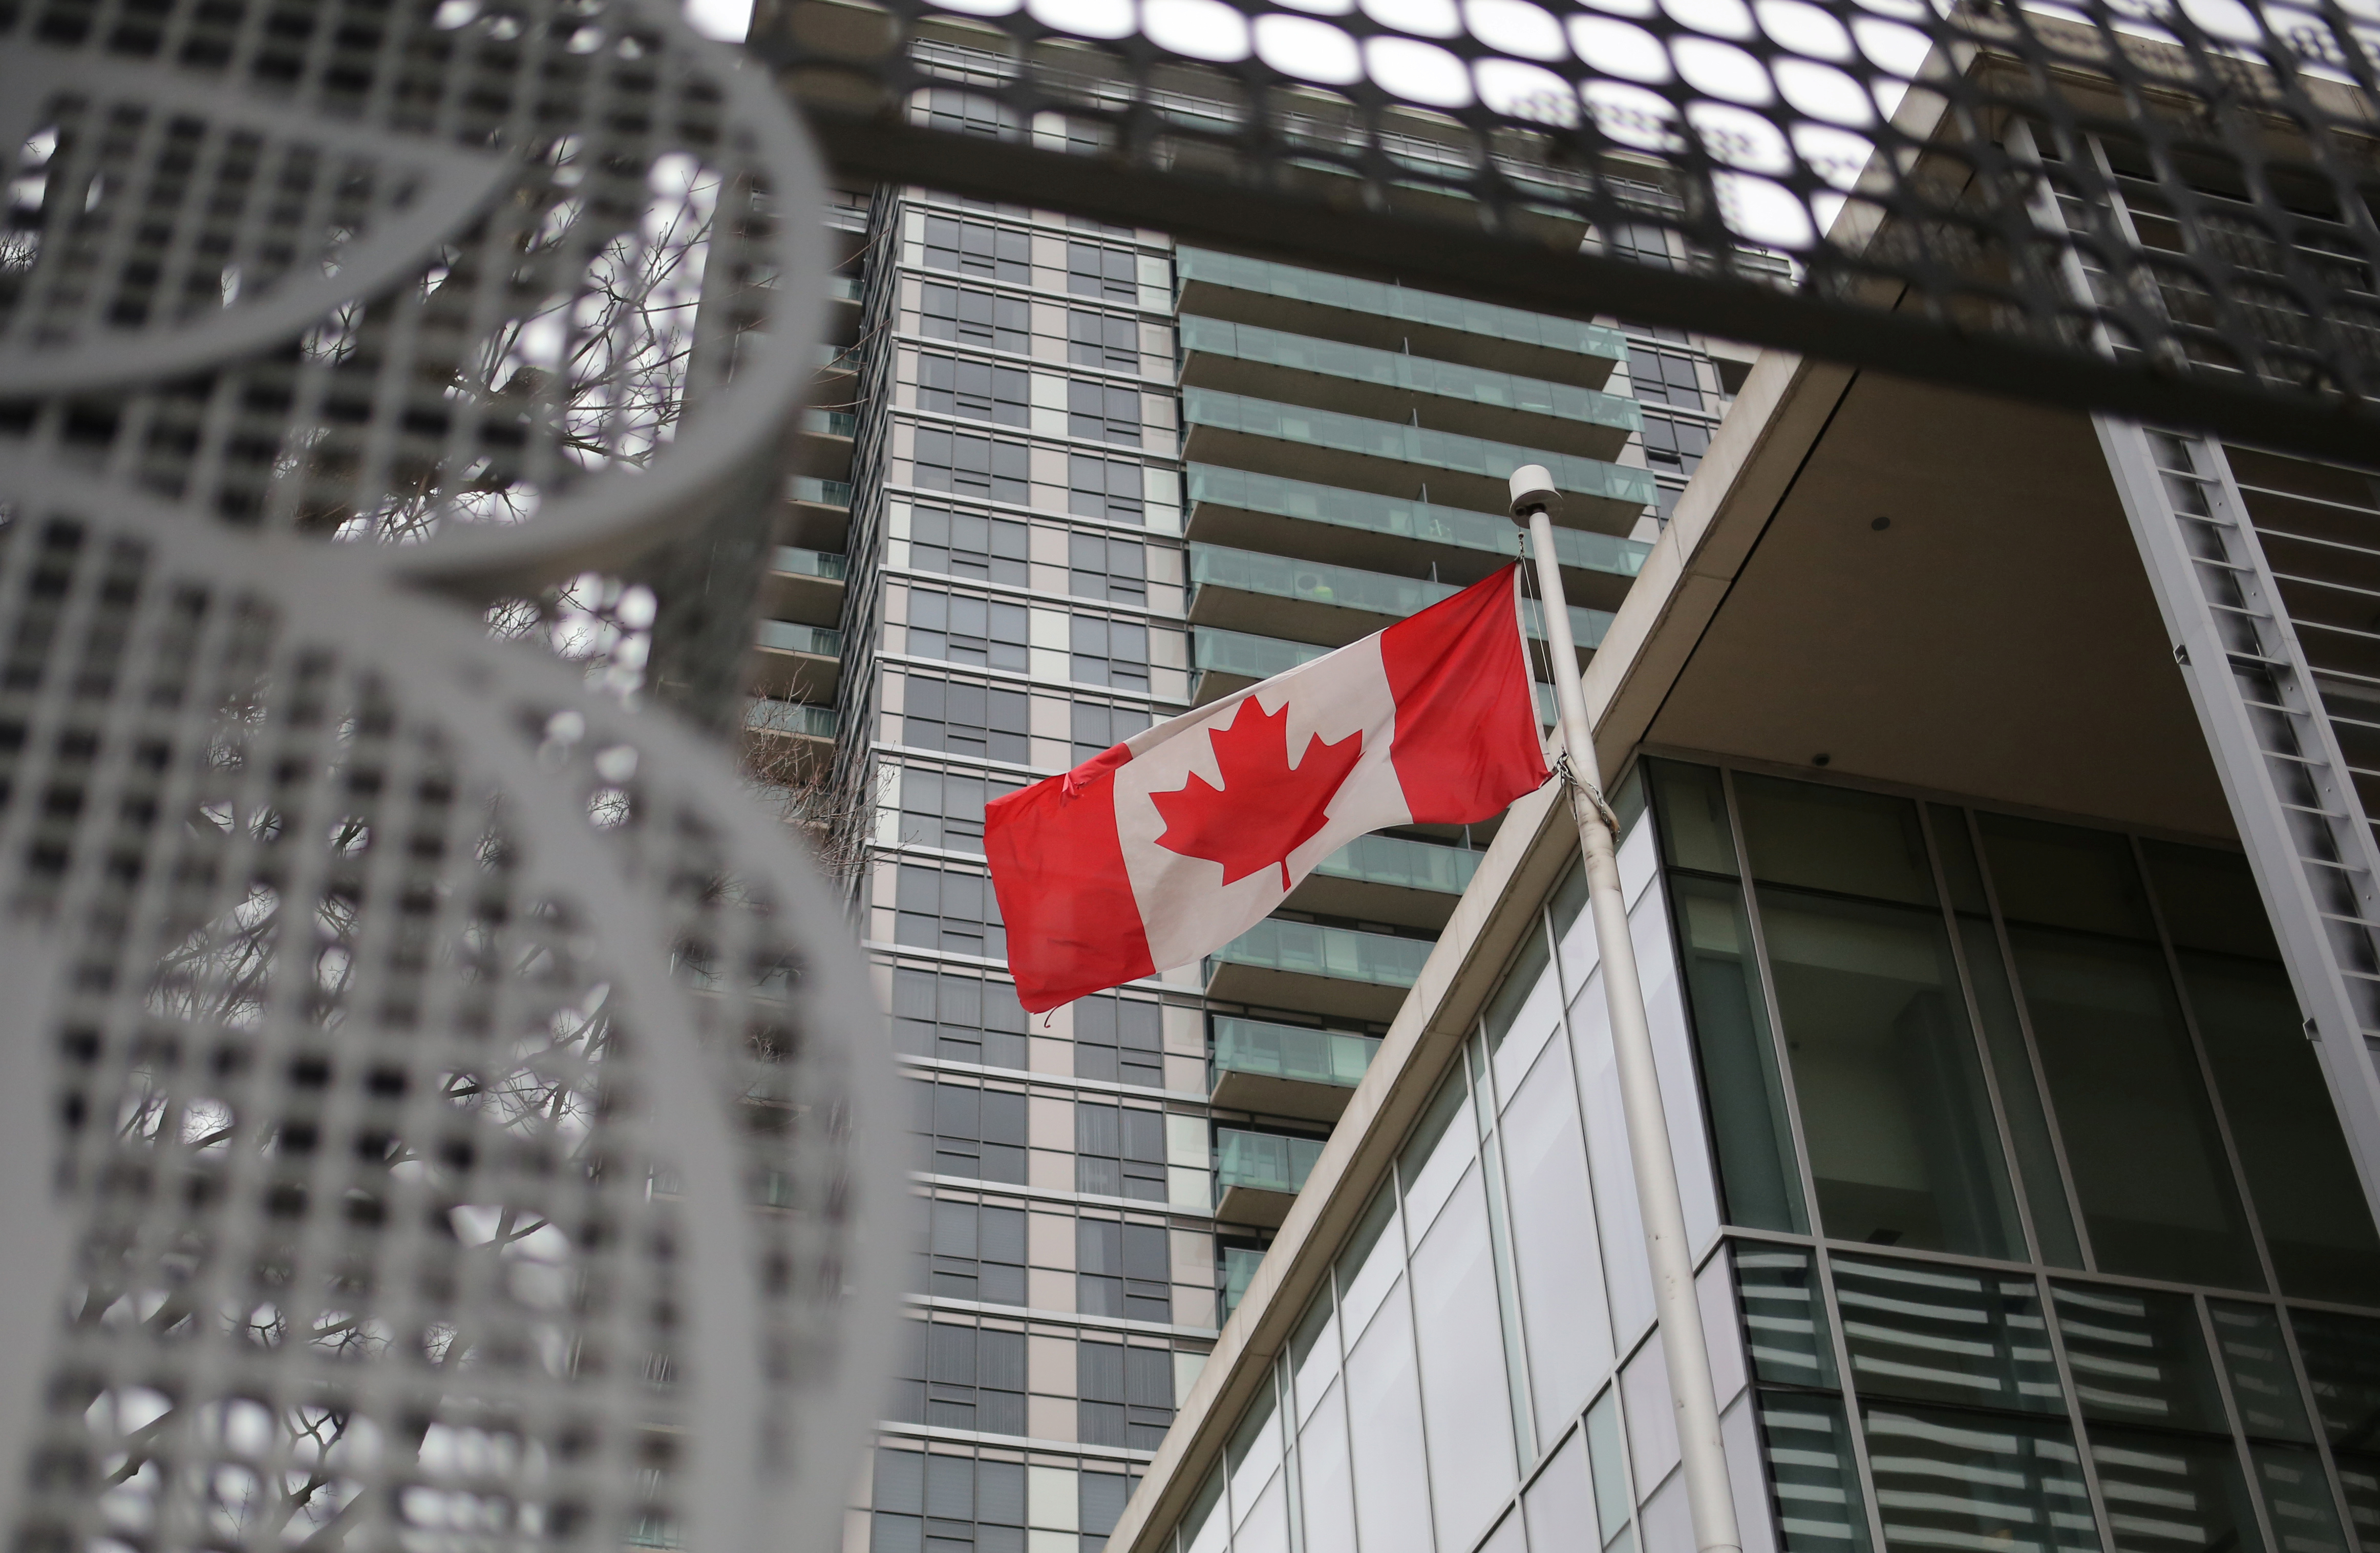 A Canadian flag flies outside the North Toronto Collegiate Institute, a high school run by the Toronto District School Board in Toronto, Ontario, Canada March 24, 2017.  REUTERS/Chris Helgren - RC1A92EC9340